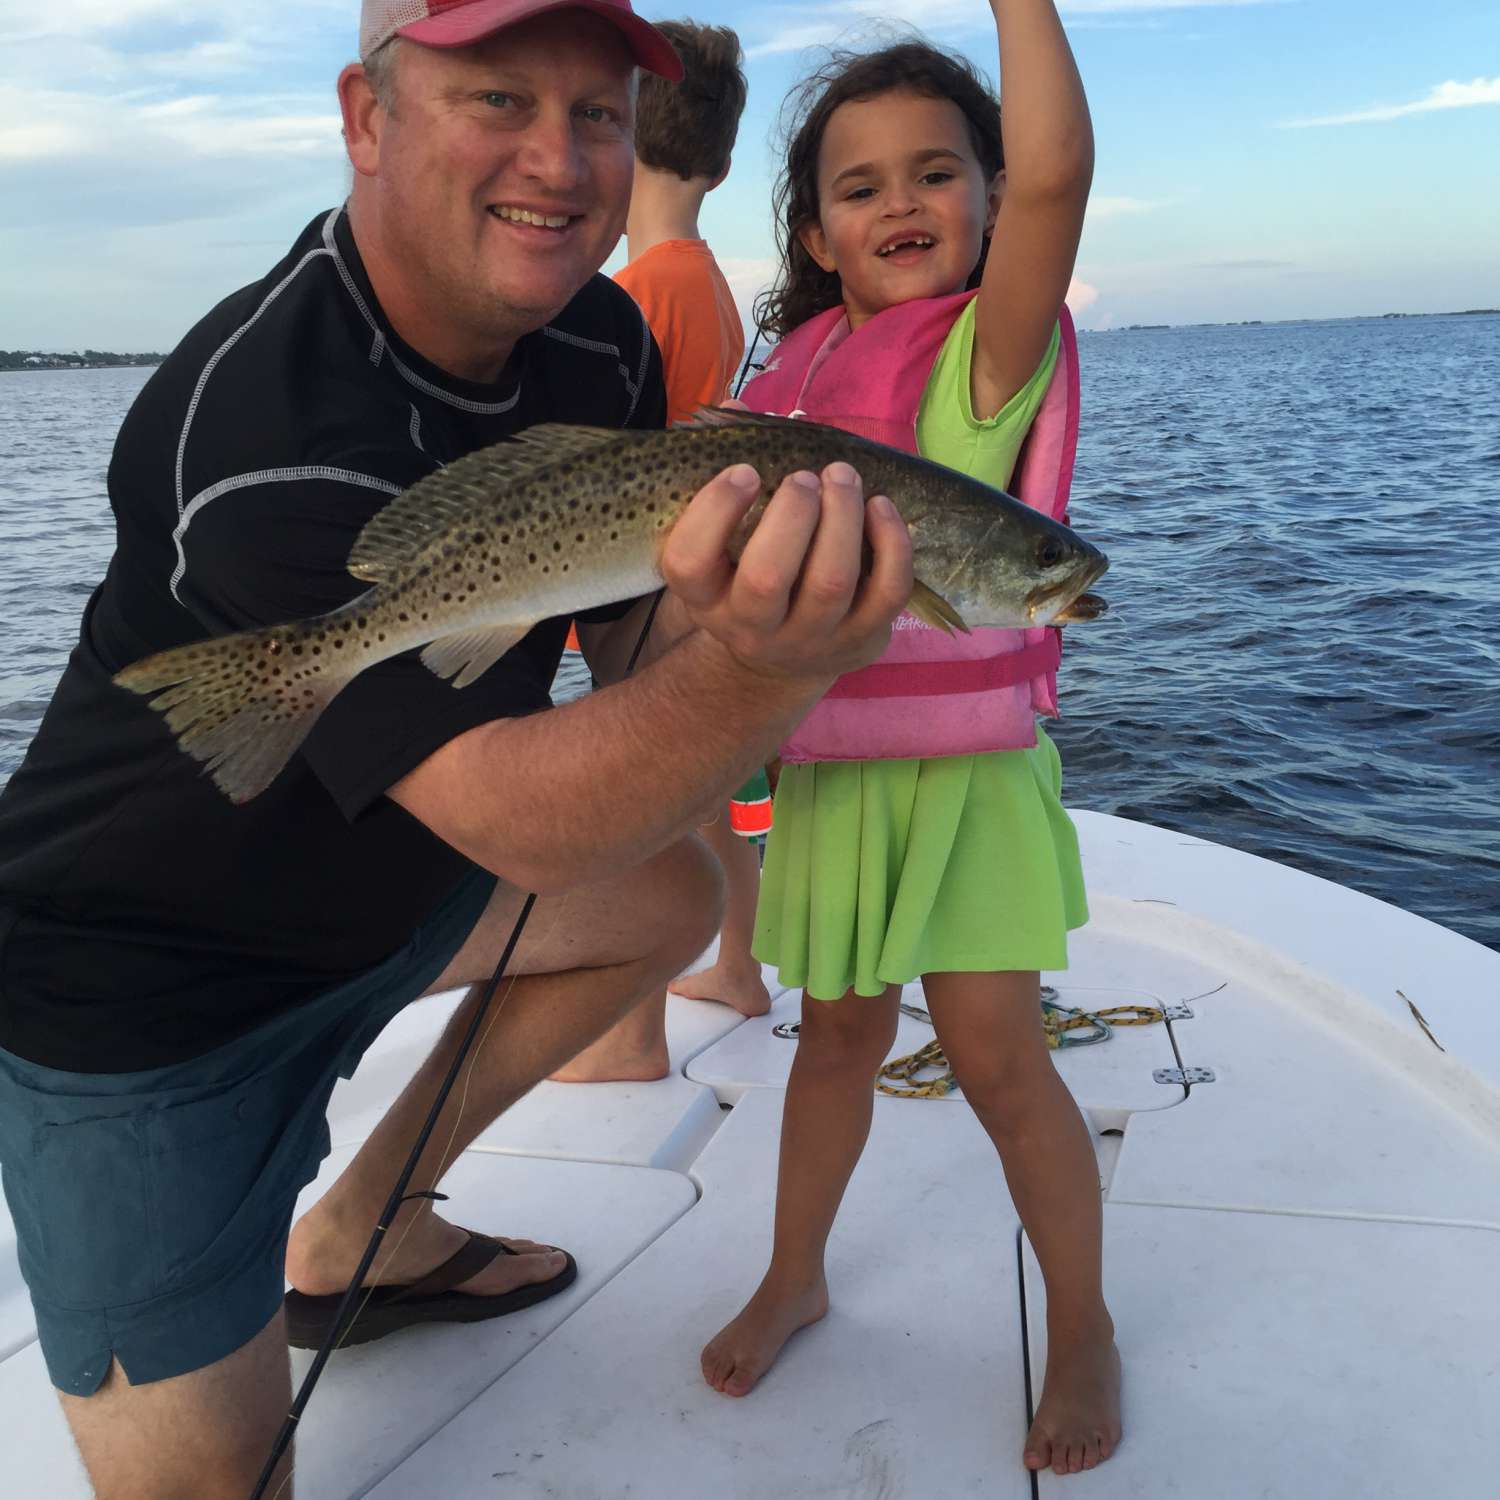 Title: Lil Girl And Lil Trout - On board their Sportsman Masters 207 Bay Boat - Location: Gulf Breeze, Florida. Participating in the Photo Contest #SportsmanFebruary2017